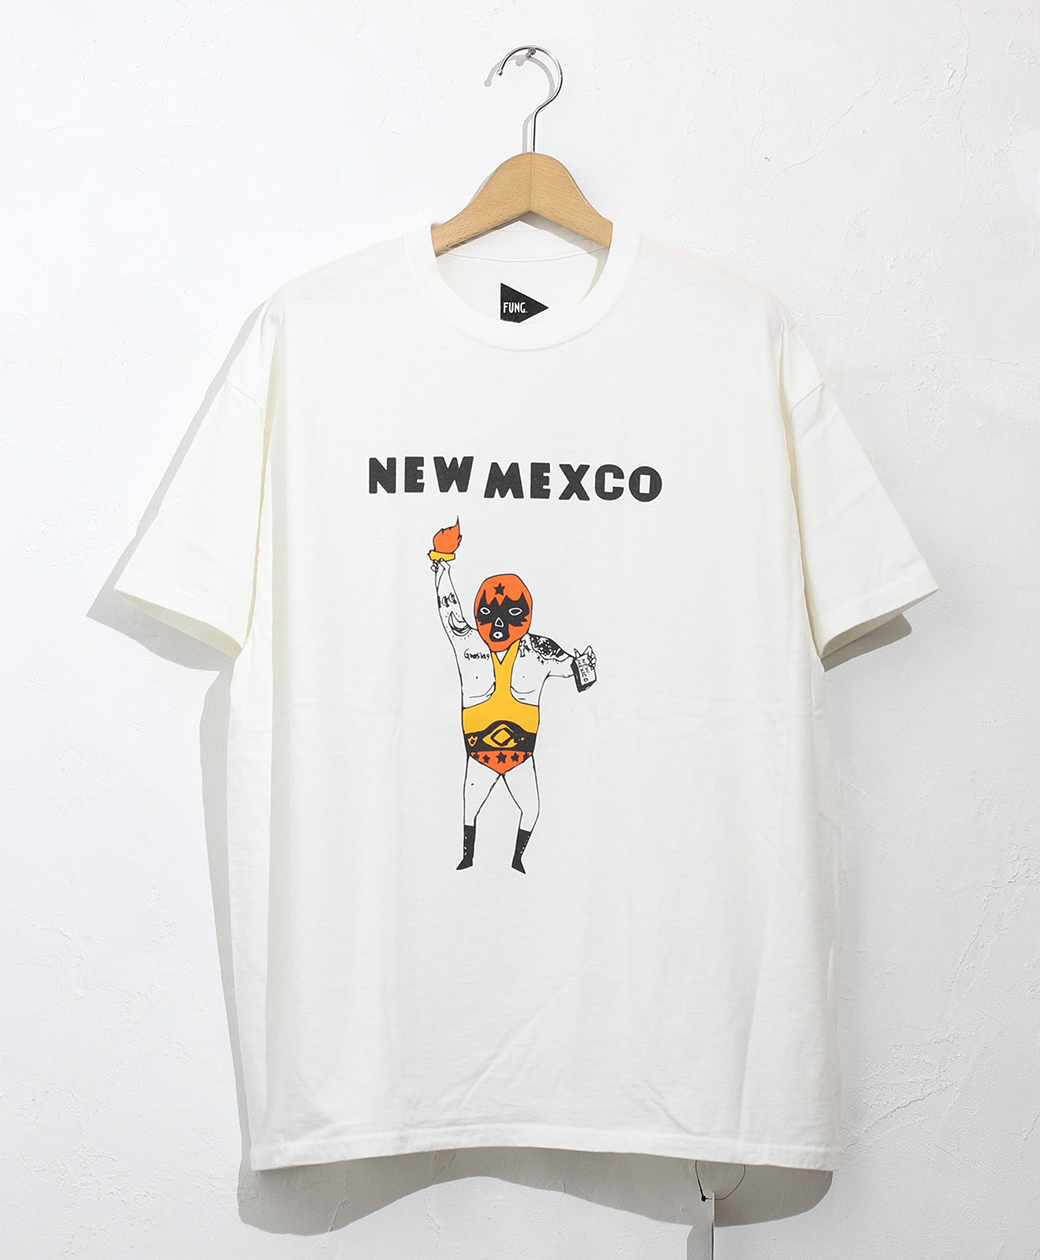 new mexco(white)